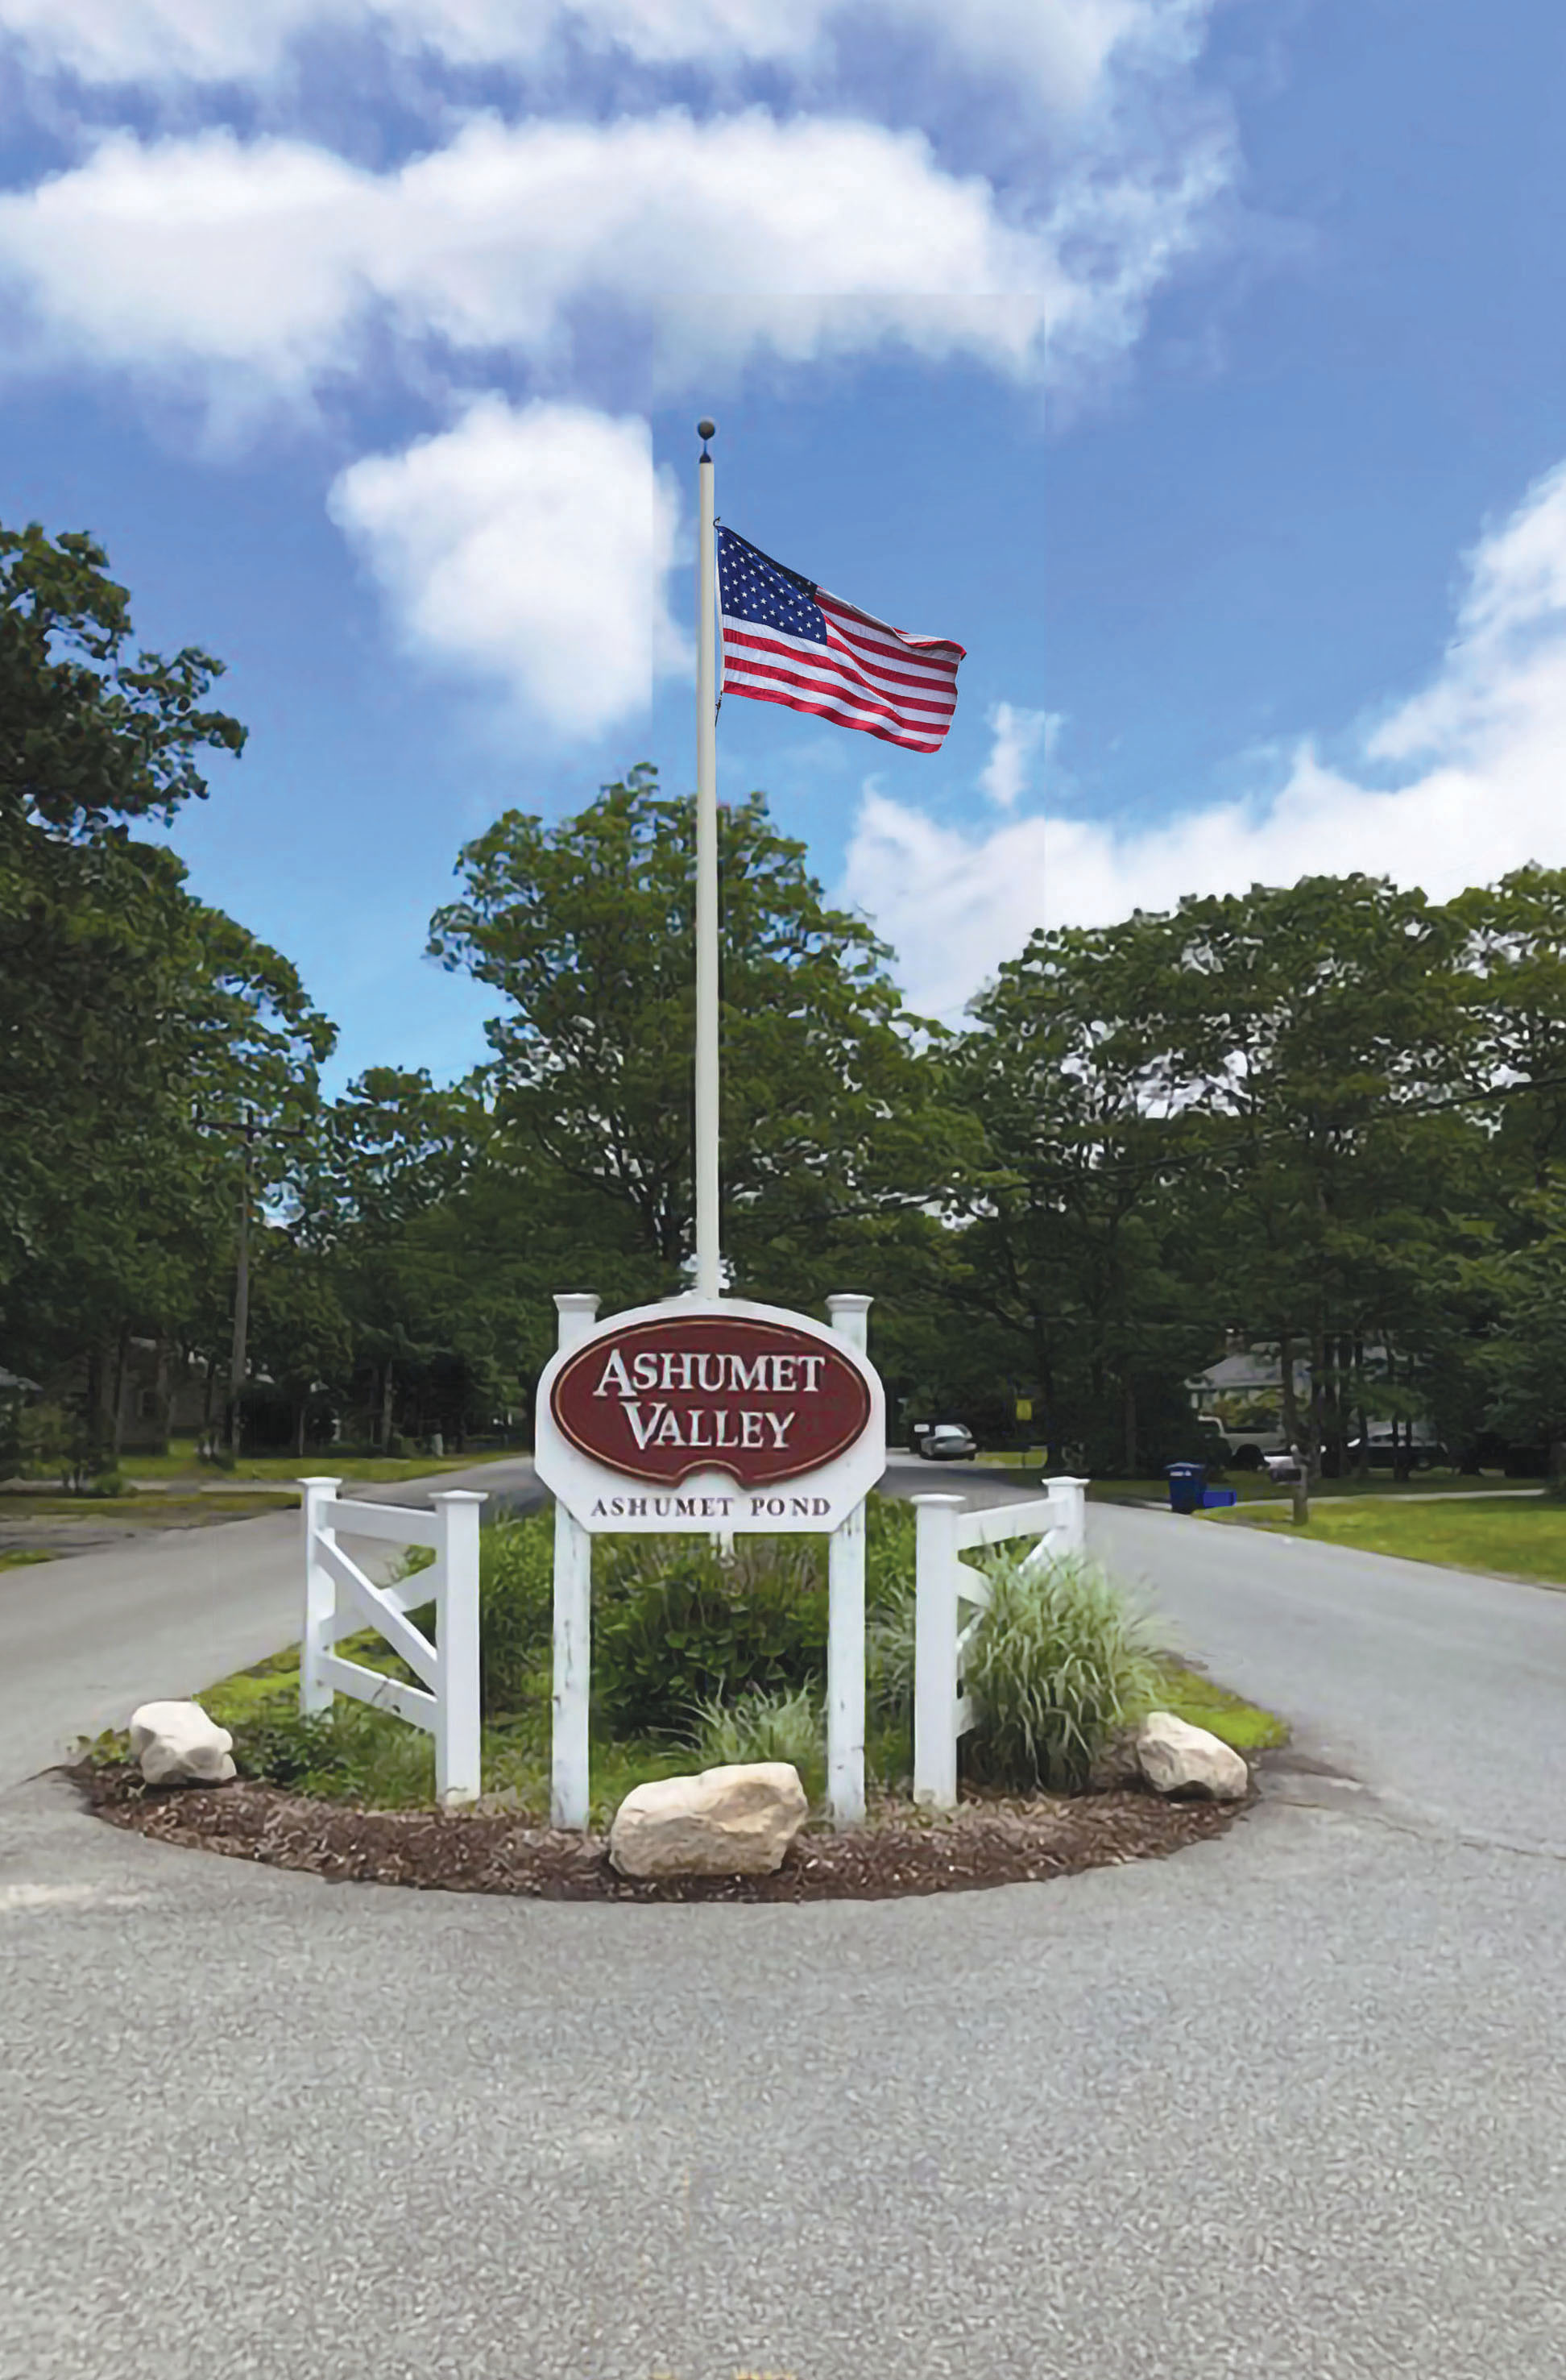 Ashumet Valley Property Owners Association